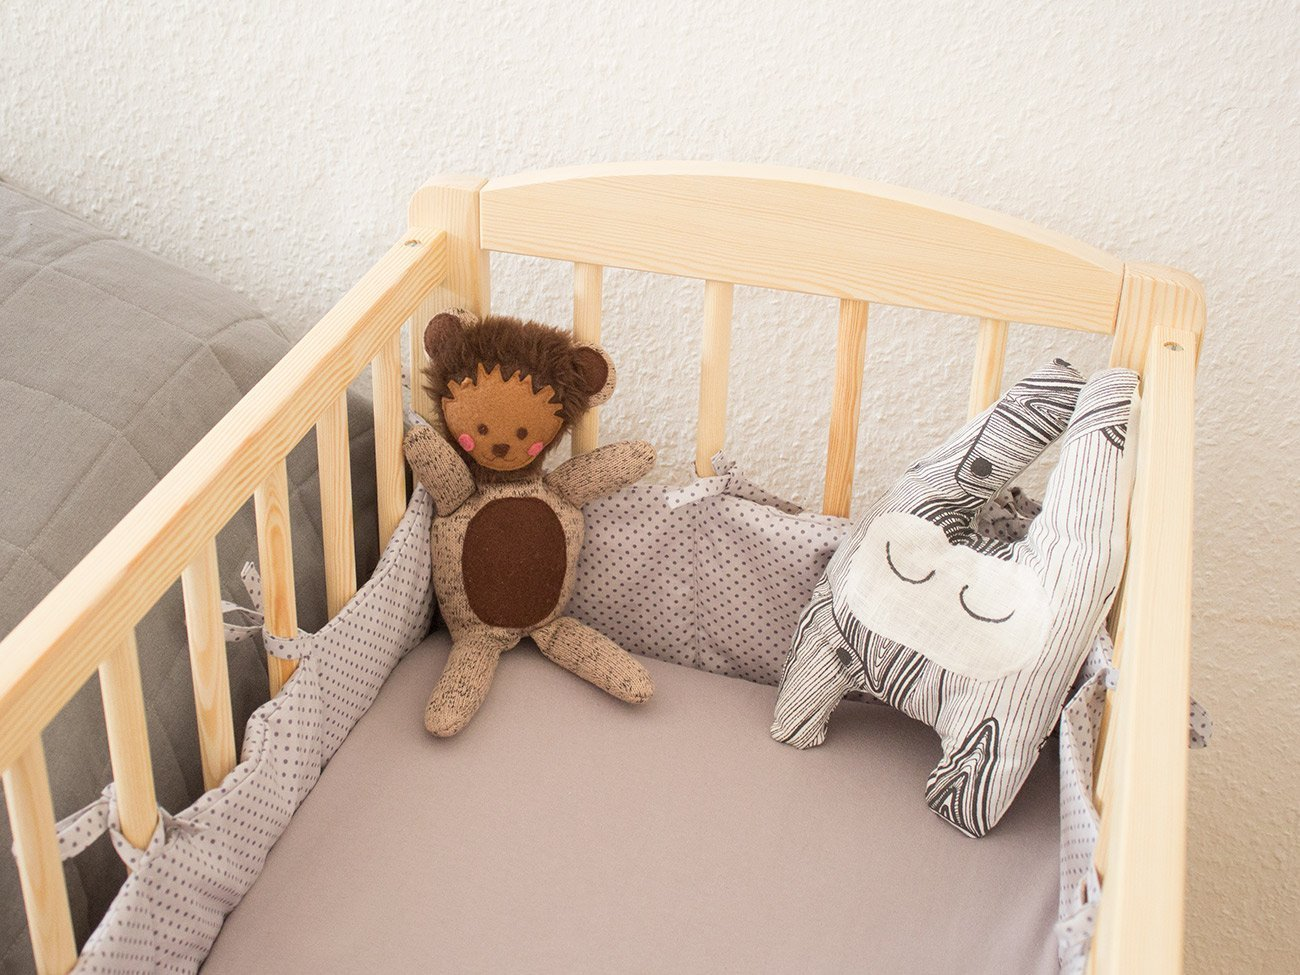 n hanleitung bettnestchen bettlaken f rs babybett bernina blog. Black Bedroom Furniture Sets. Home Design Ideas